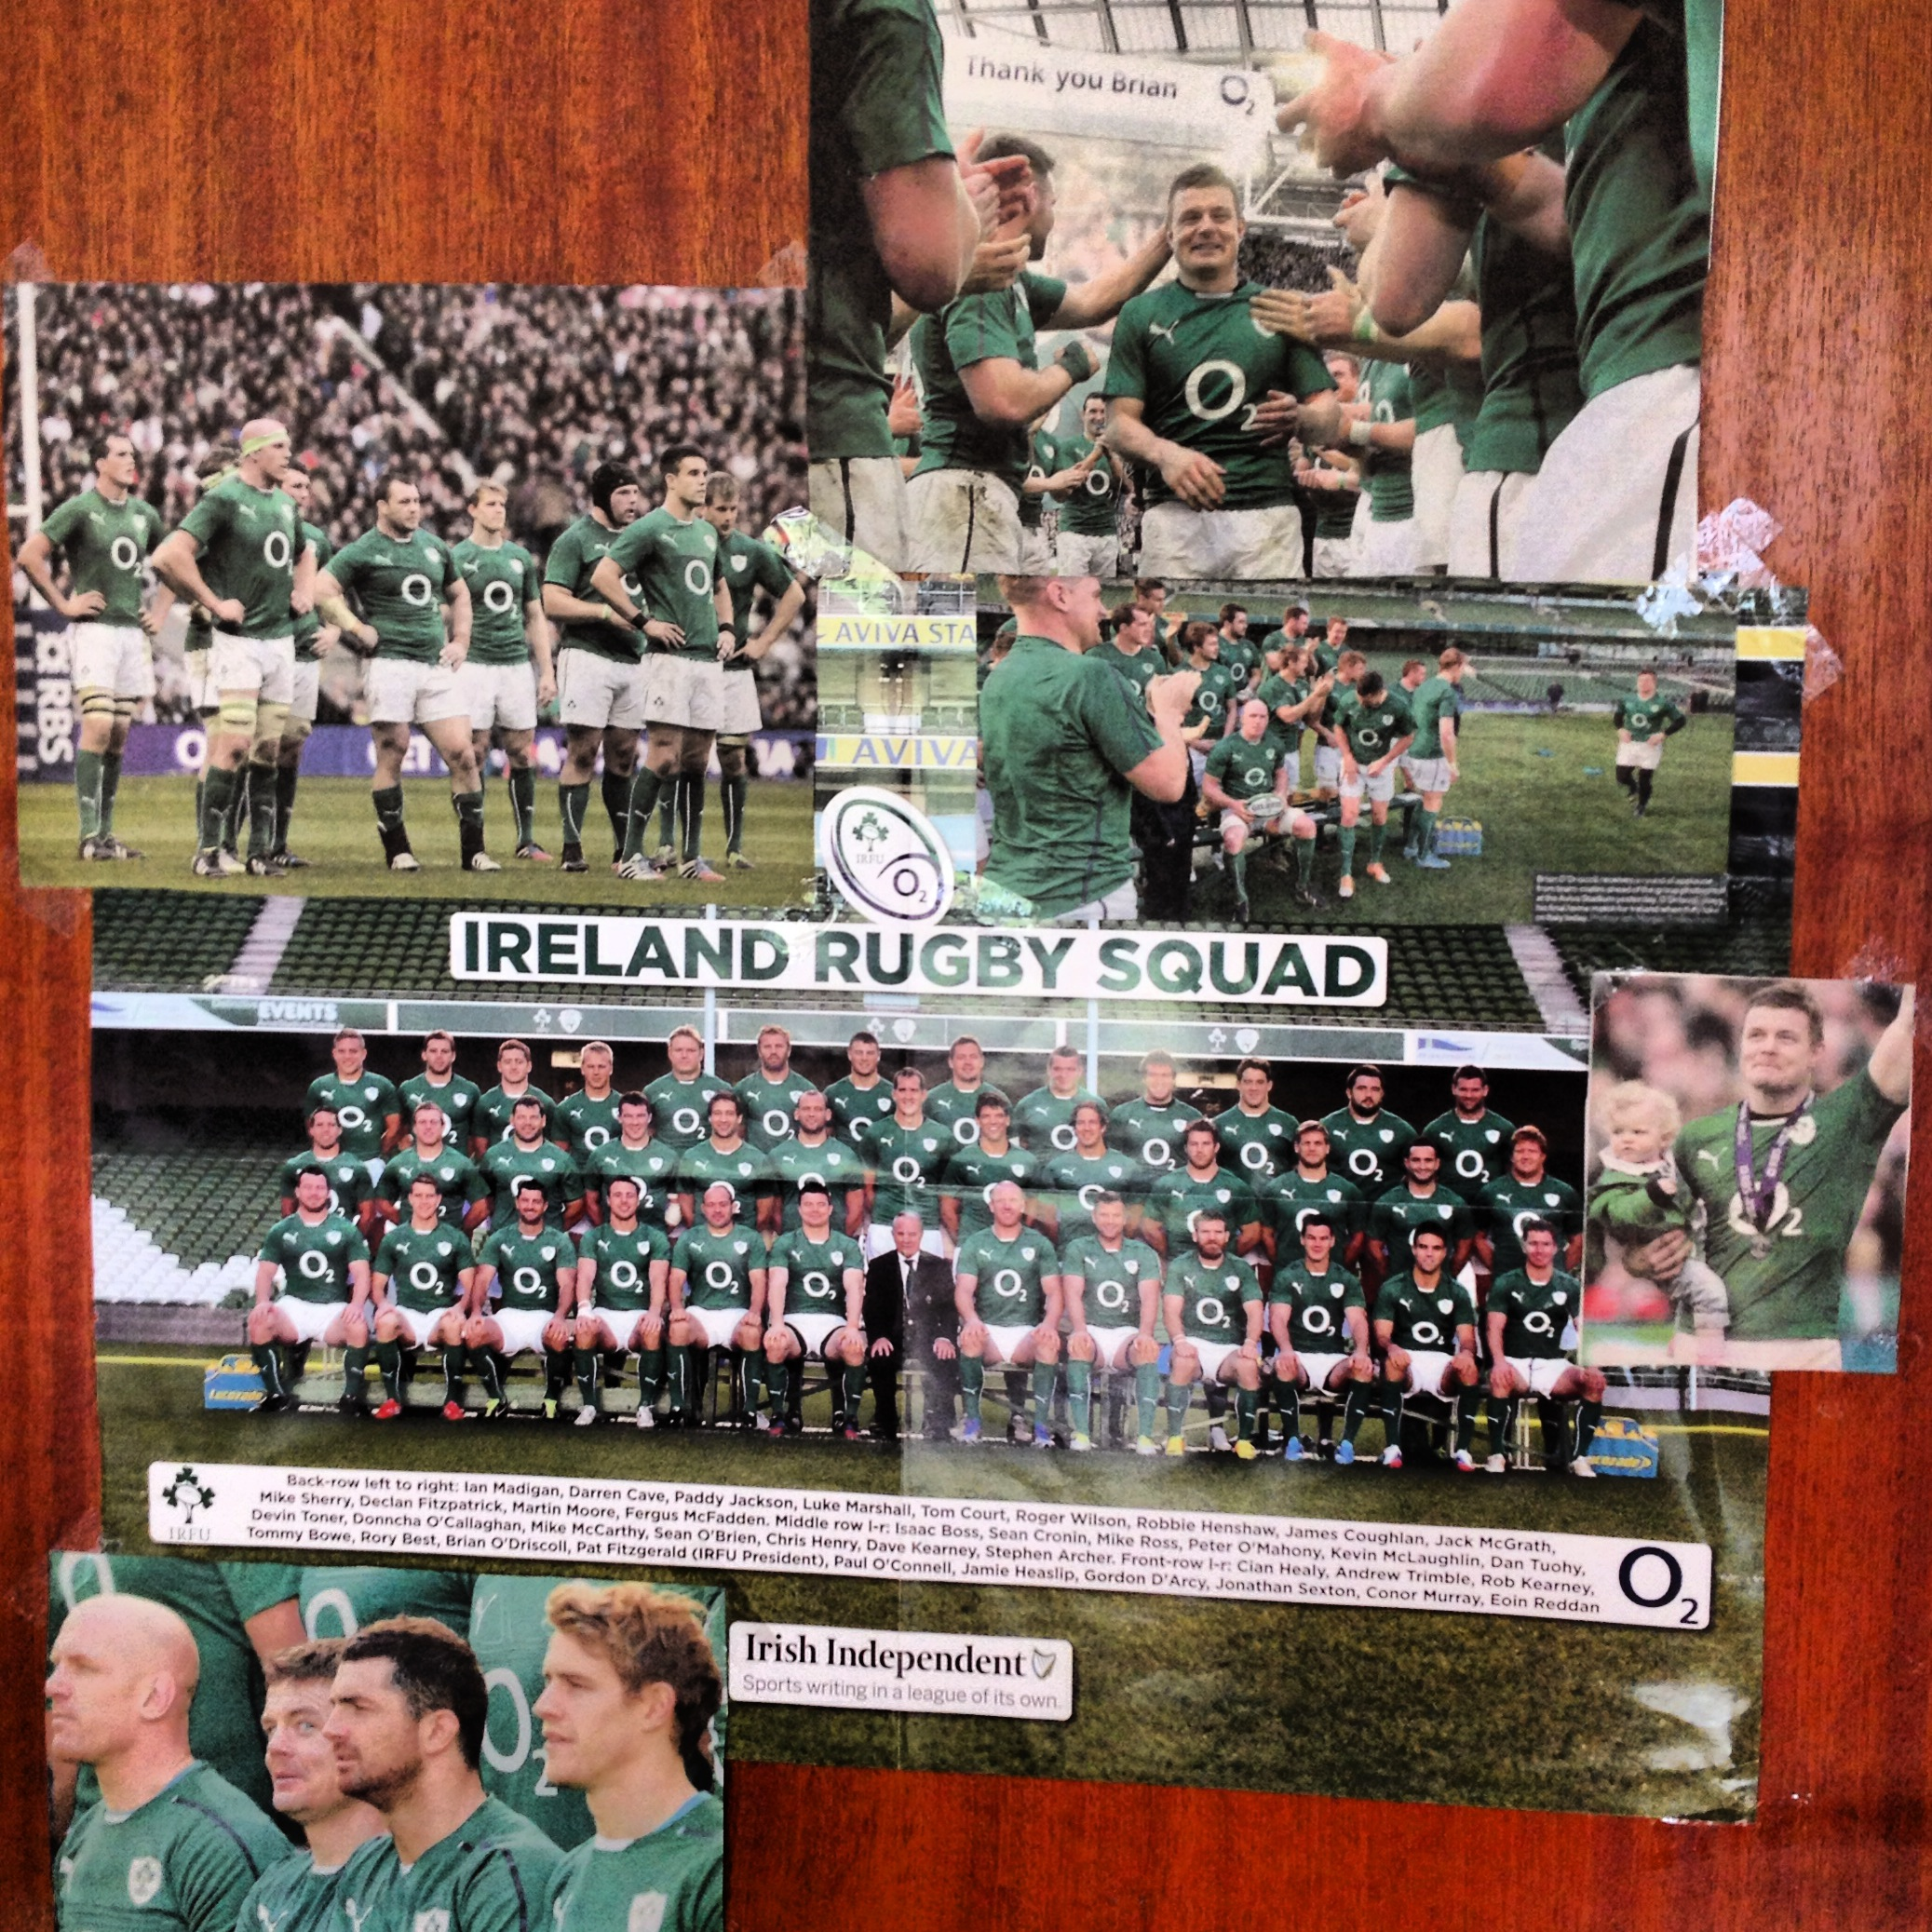 The veritable shrine to the rugby team, and let's face it, Brian O'Driscoll, which I amassed on the kitchen door, circa 2014.